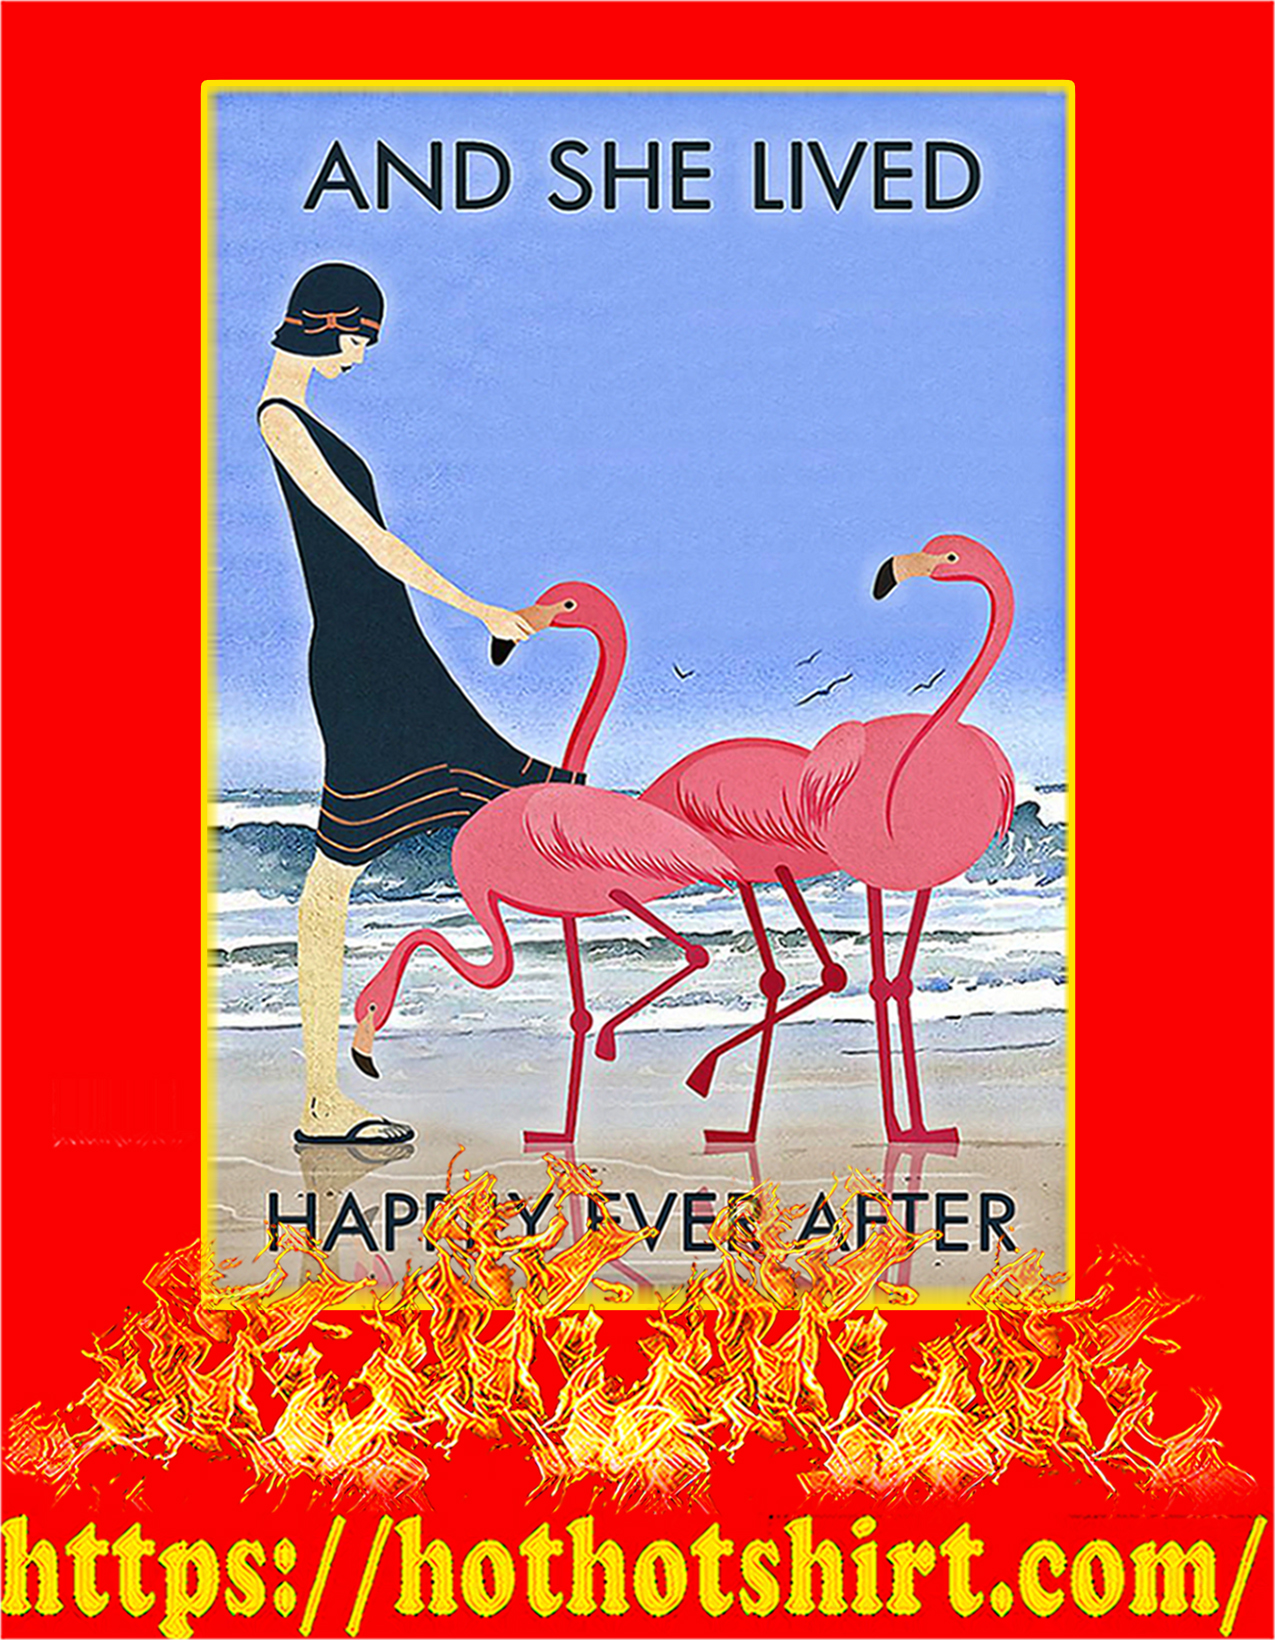 Flamingo And she lived happily ever after poster - A2